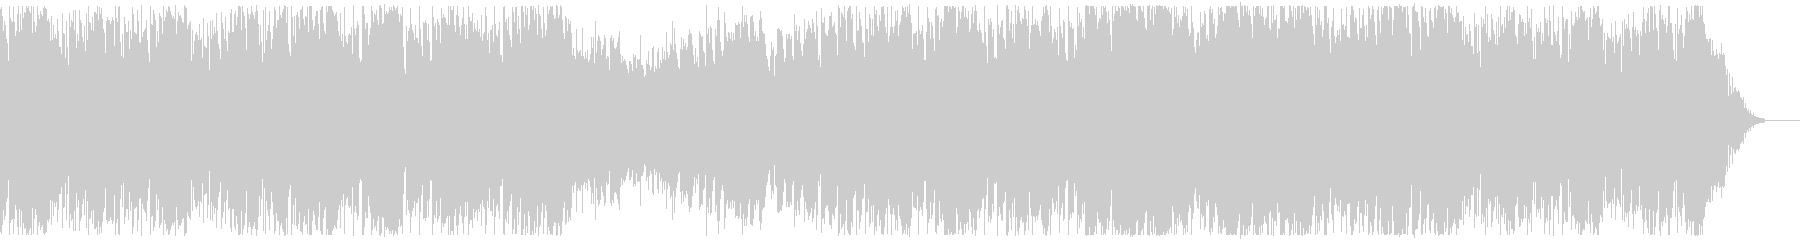 CM / Relax / Western Female Vocal's unreproduced waveform